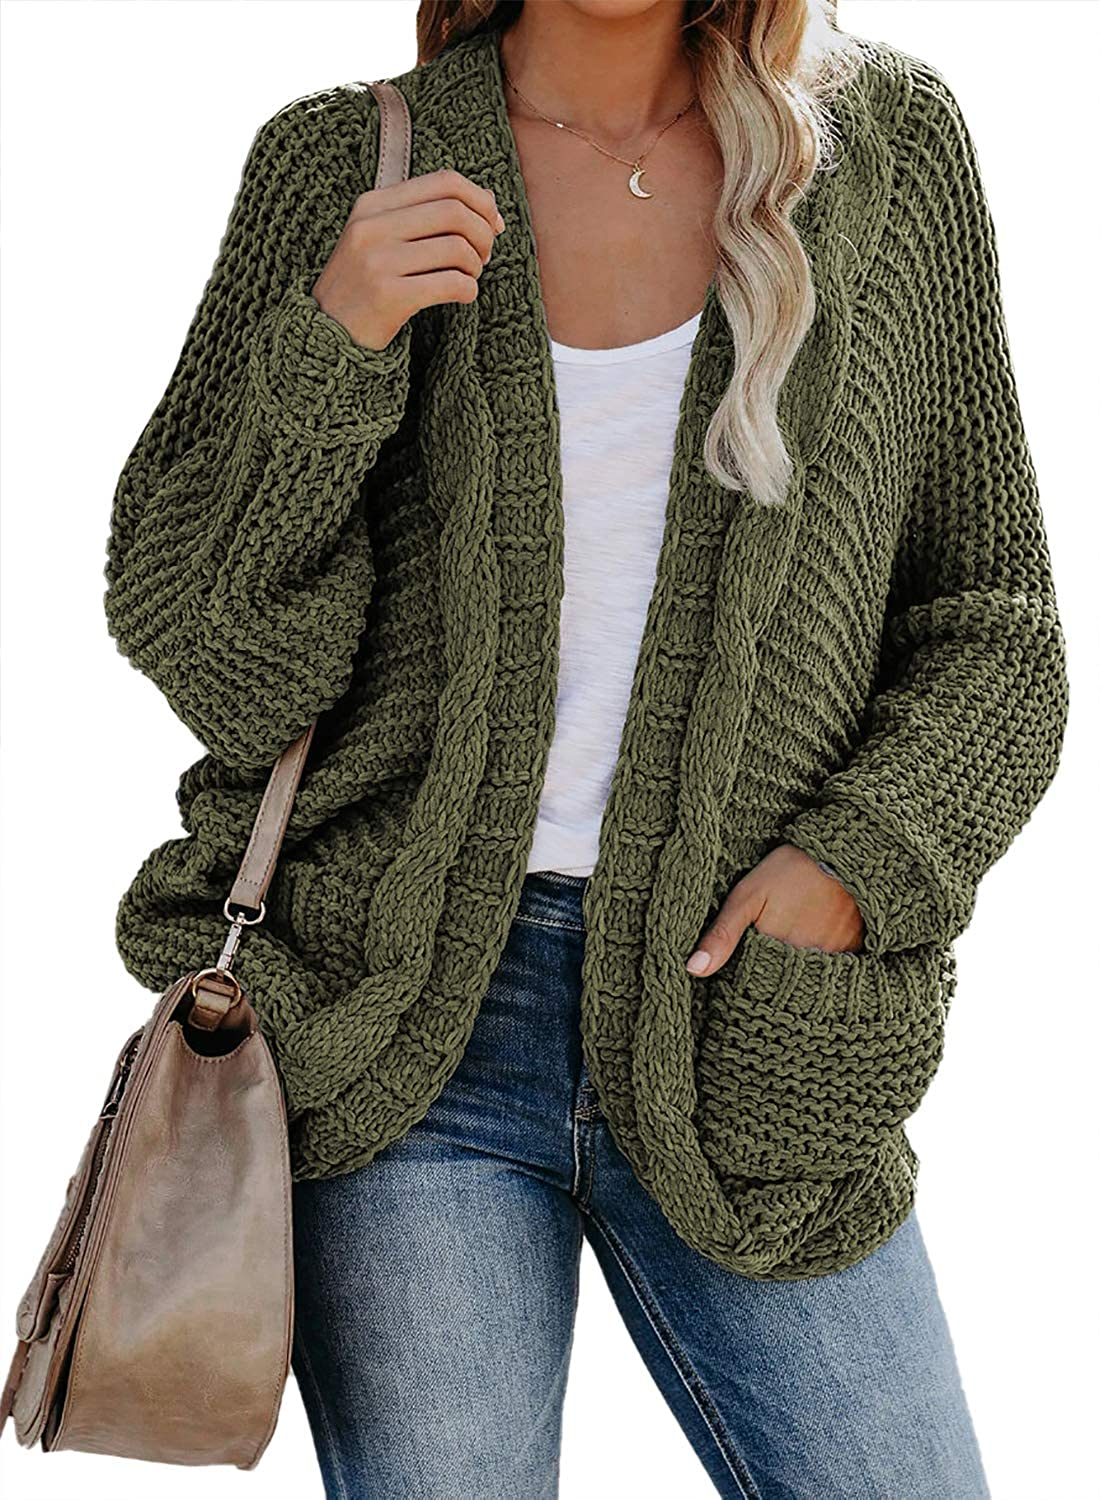 Aleumdr Women Open Front Long Sleeve Chunky Knit Cardigan Sweaters Outwear with Pockets